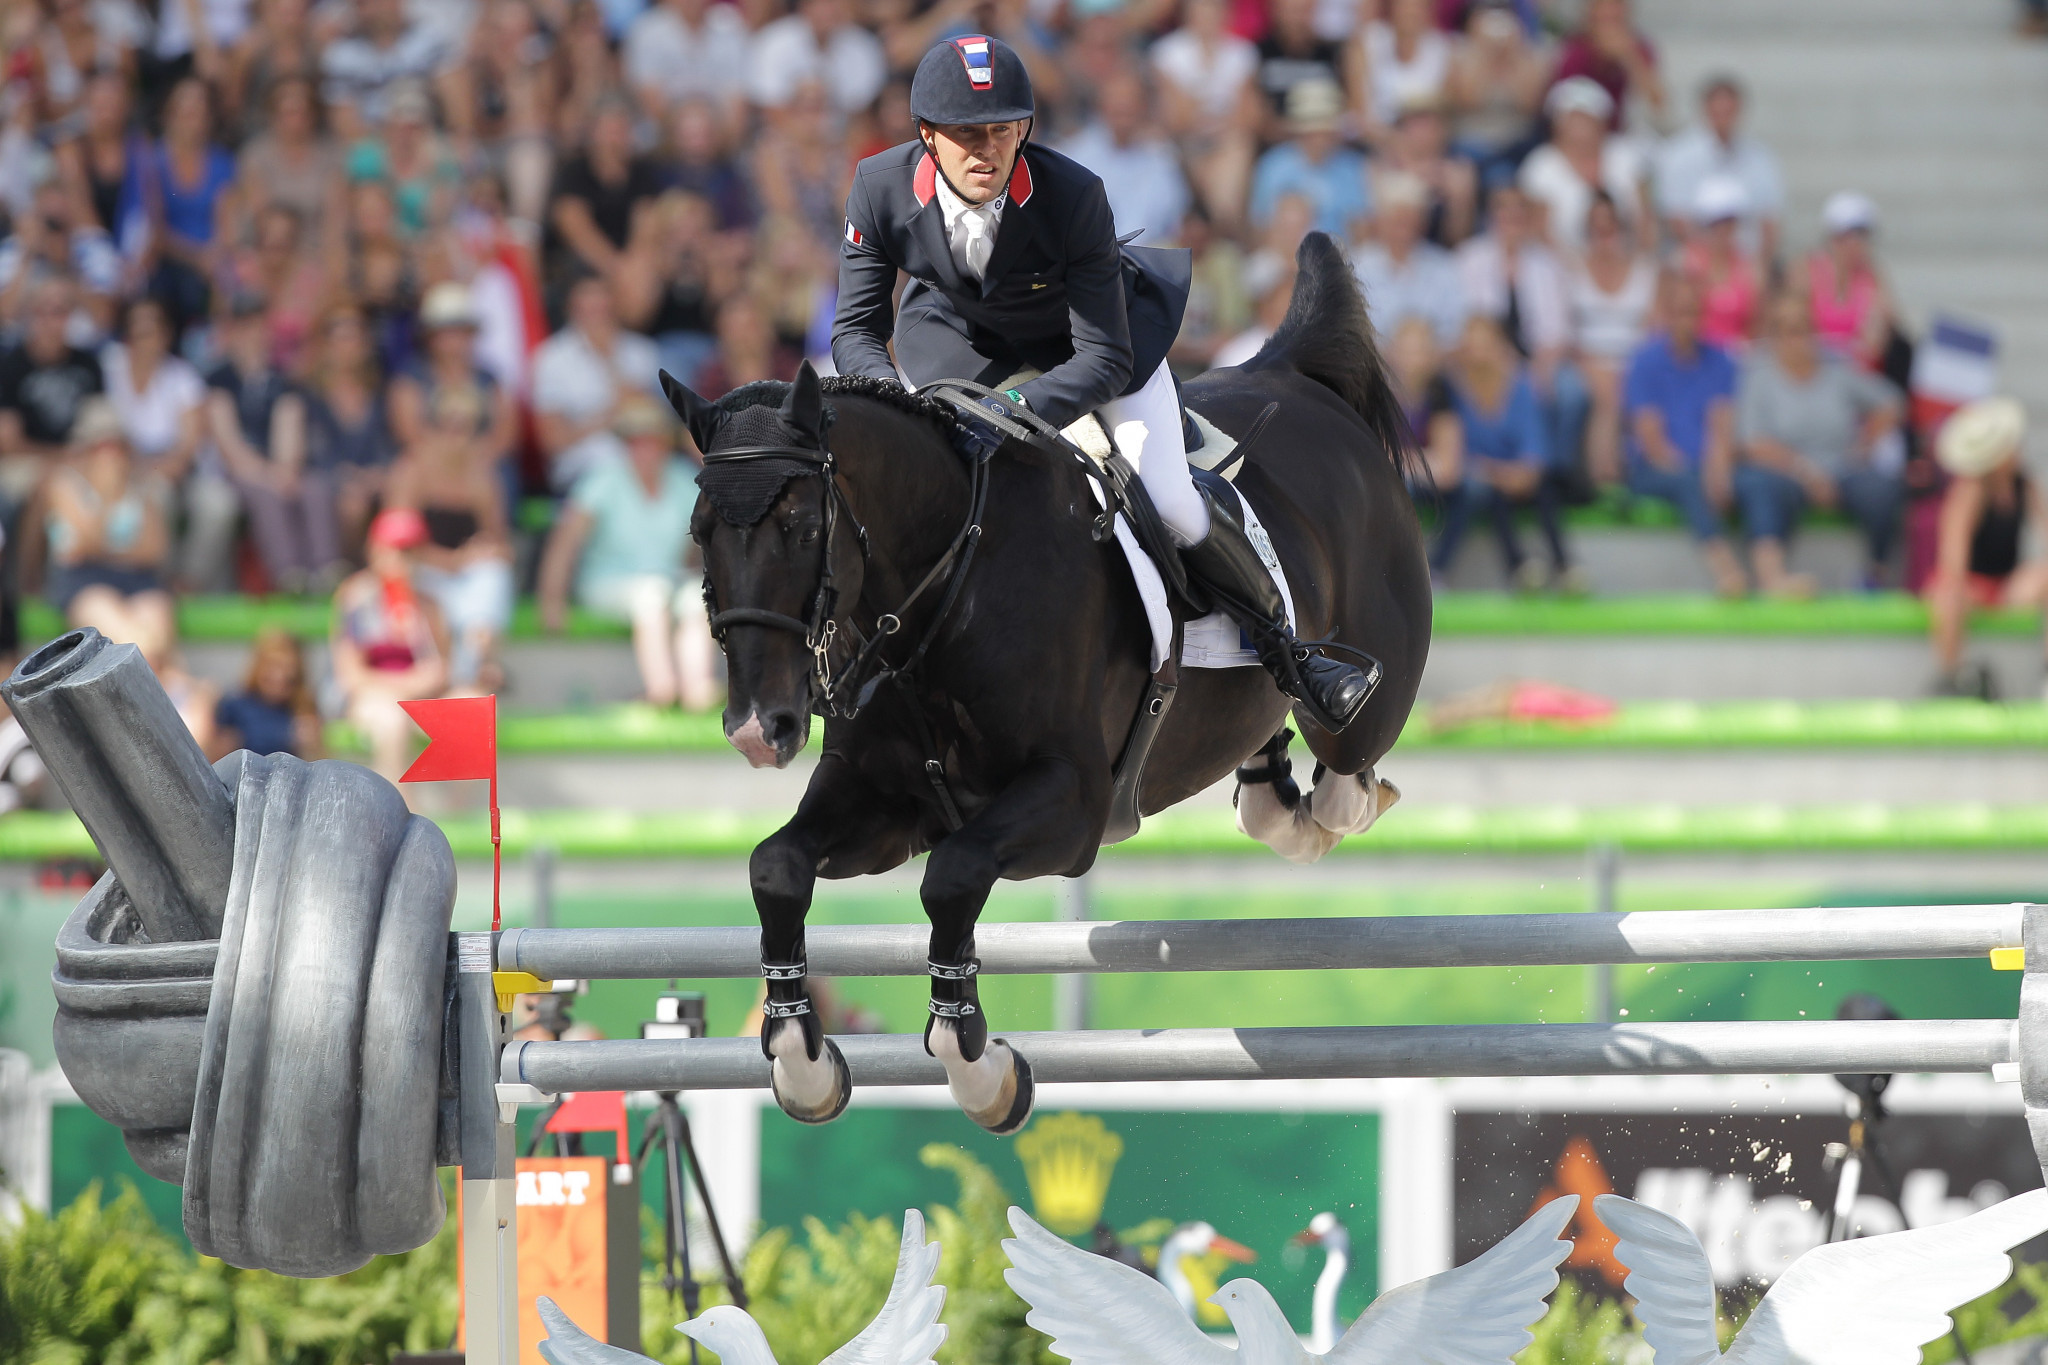 The World Equestrian Games continues to boost the sport's profile ©Getty Images